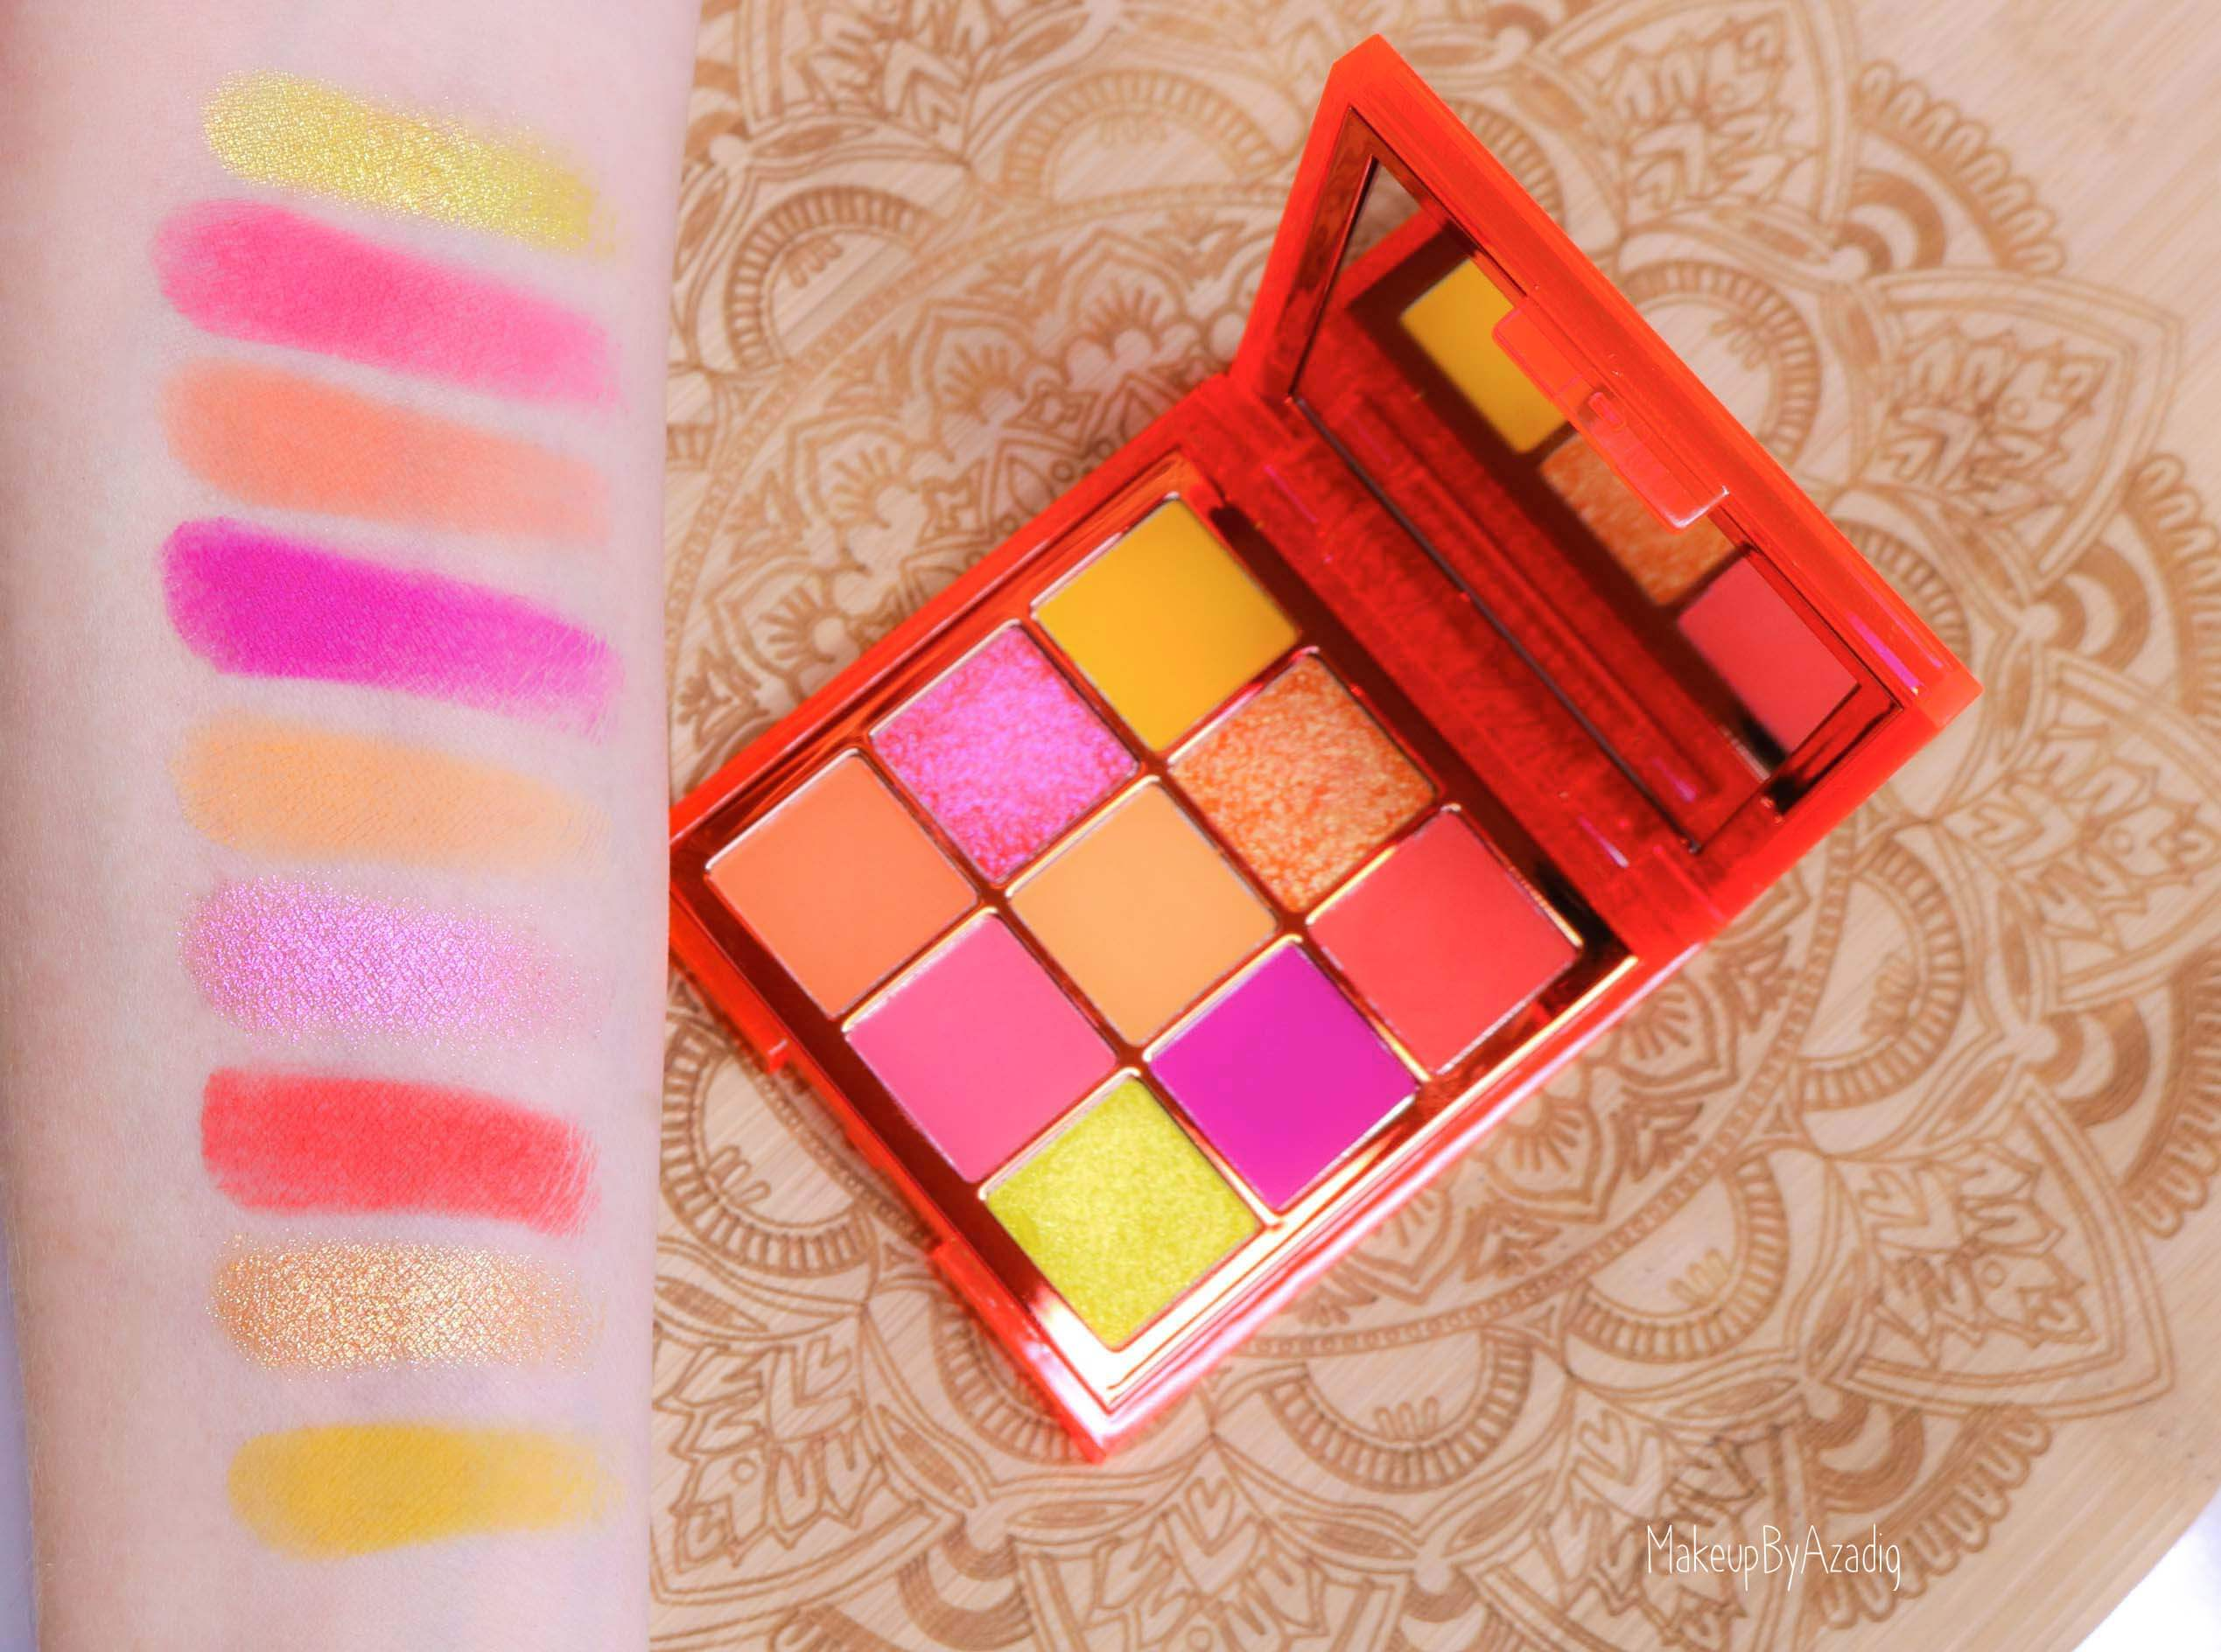 revue-review-palette-neon-obsession-huda-beauty-orange-pink-green-neon-palette-fard-paupieres-fluo-swatch-avis-prix-makeupbyazadig-swatches